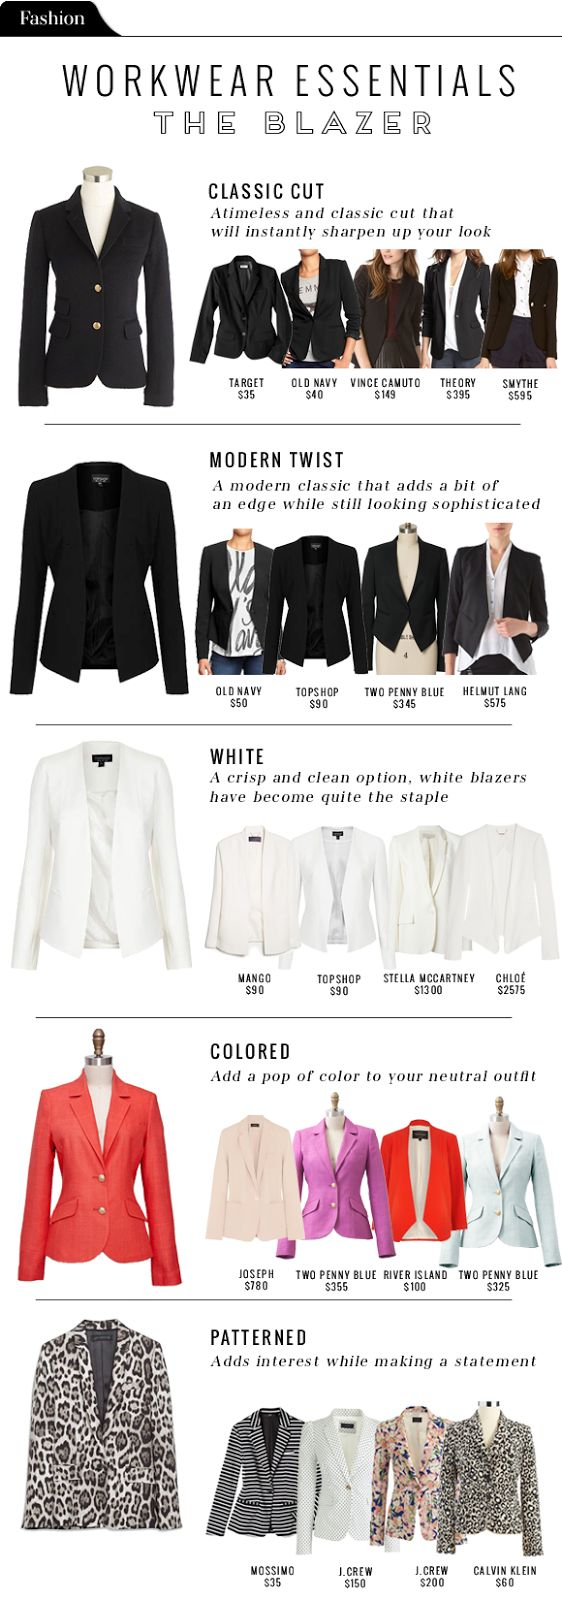 Many blazers to choose! It's a very versatile clothing piece.